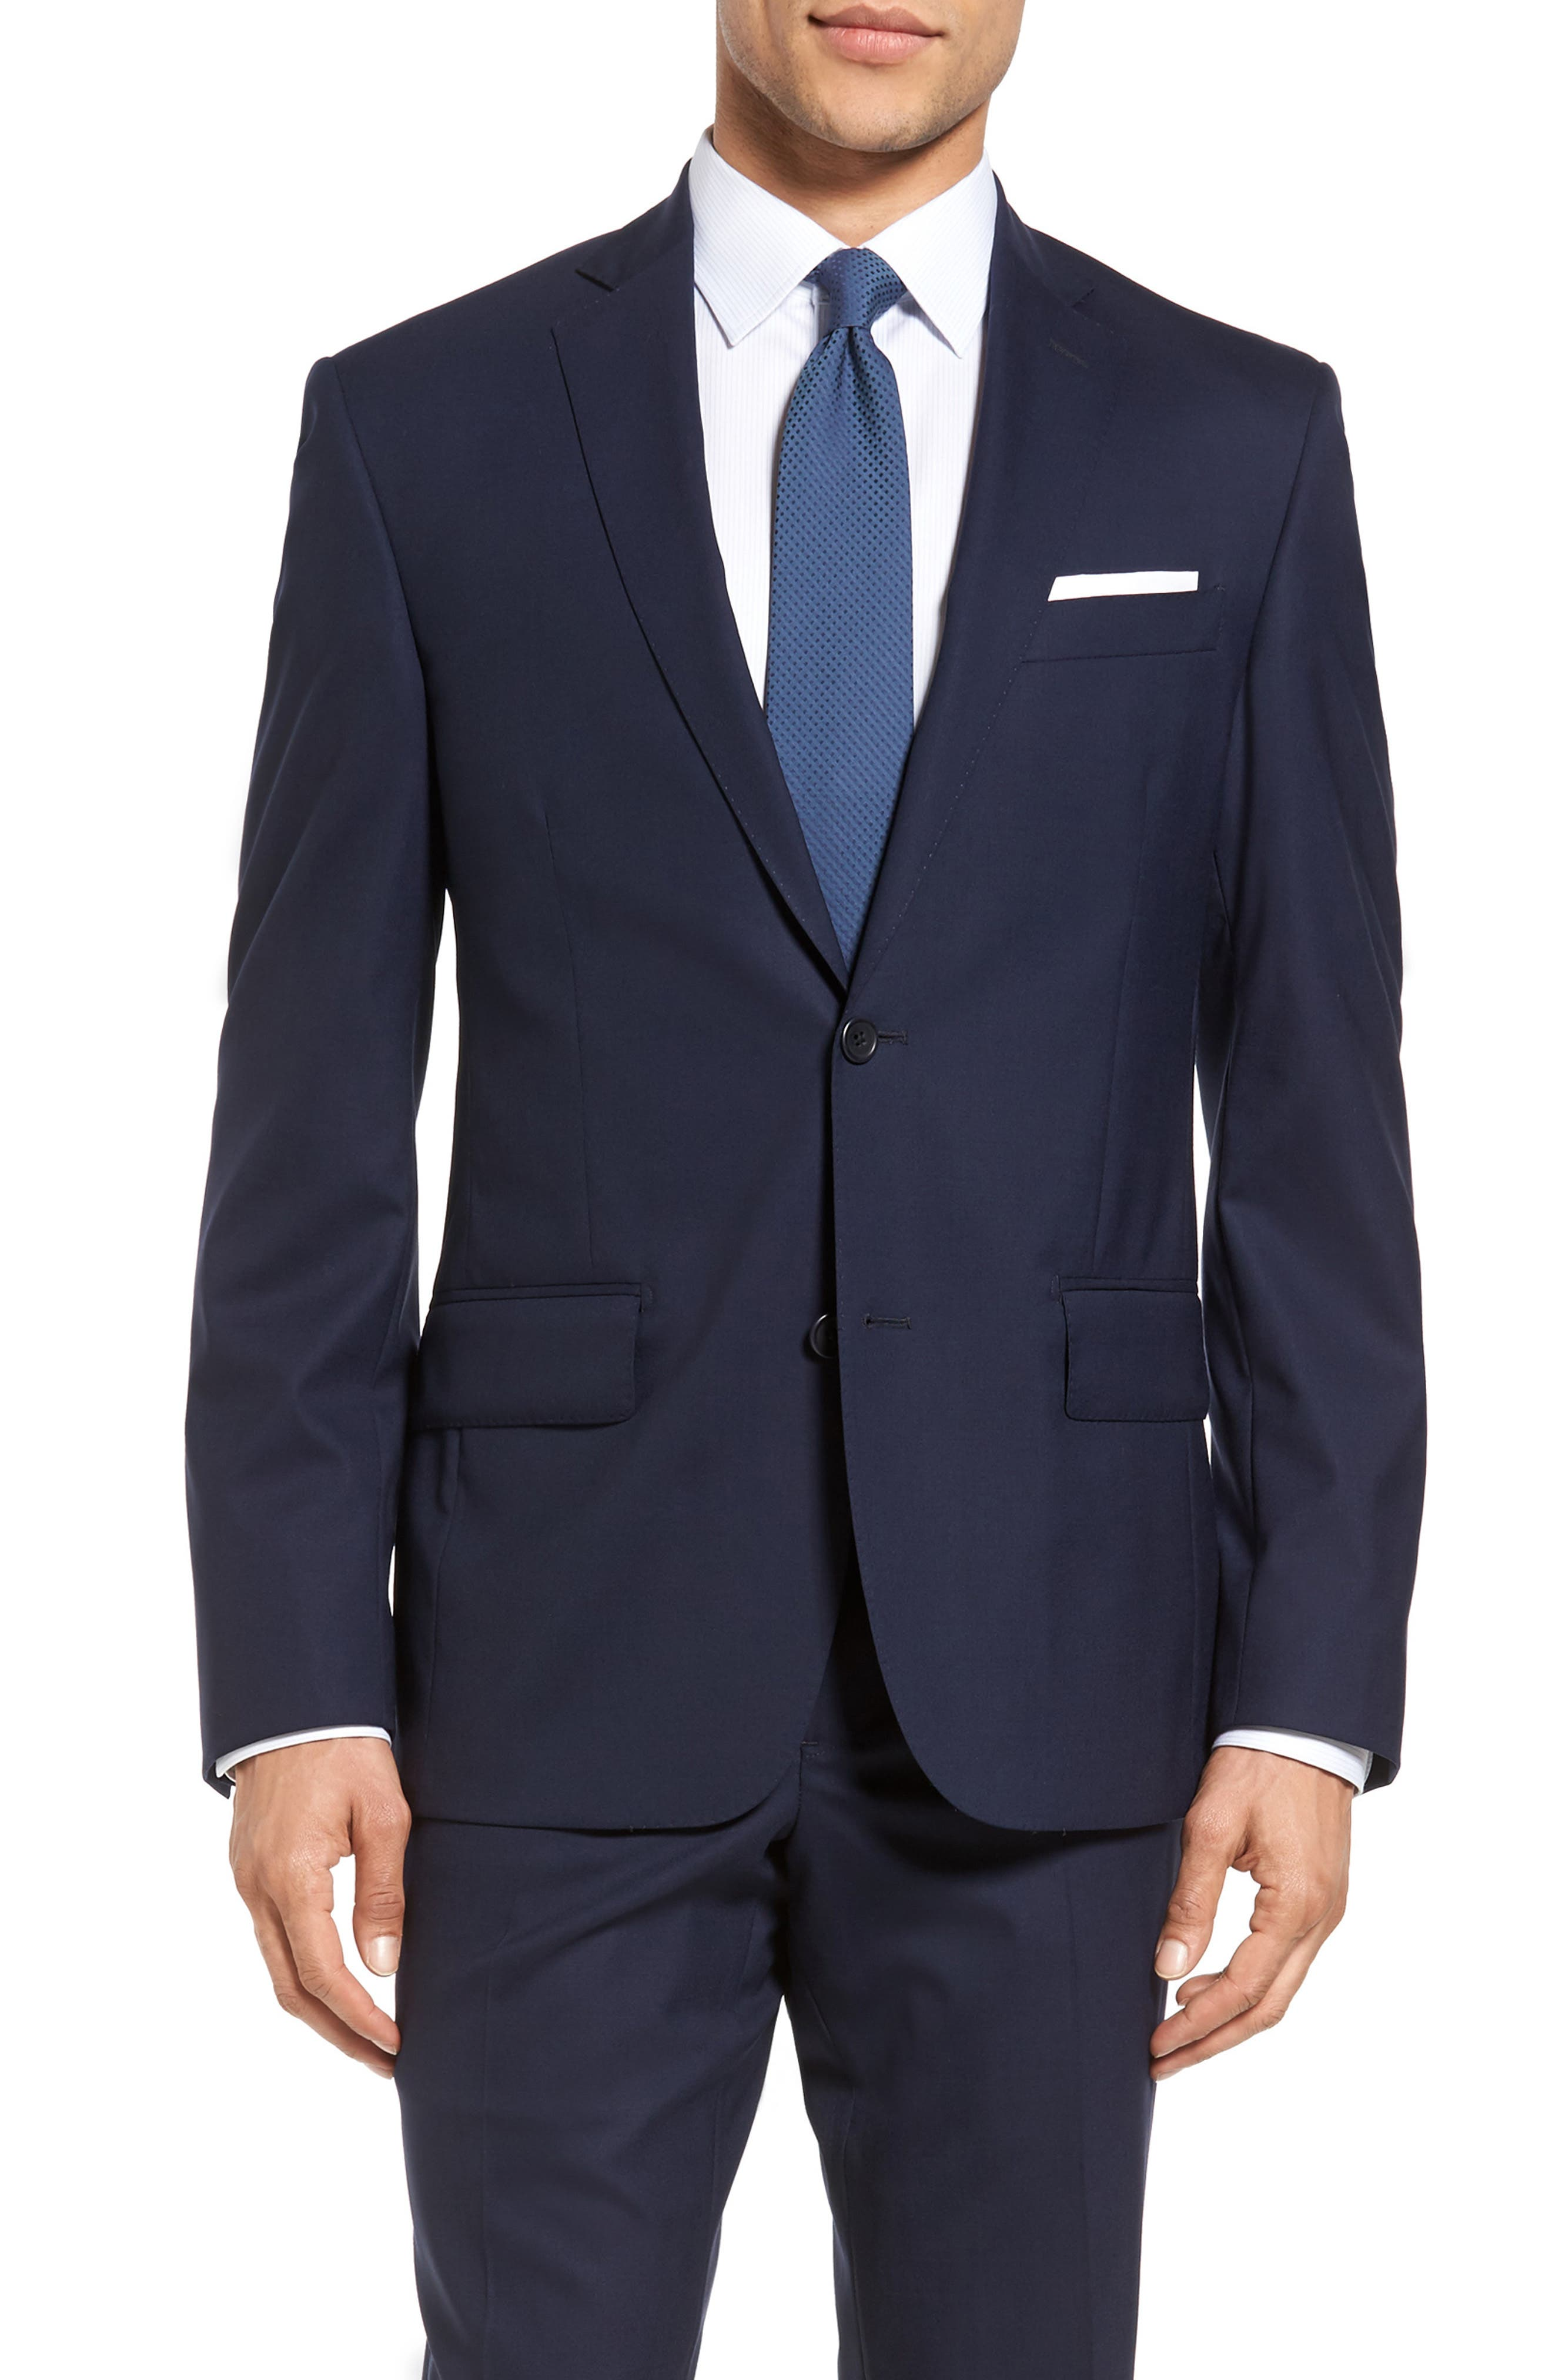 Nordstrom Men's Shop Tech-Smart Trim Fit Solid Stretch Wool Travel Suit